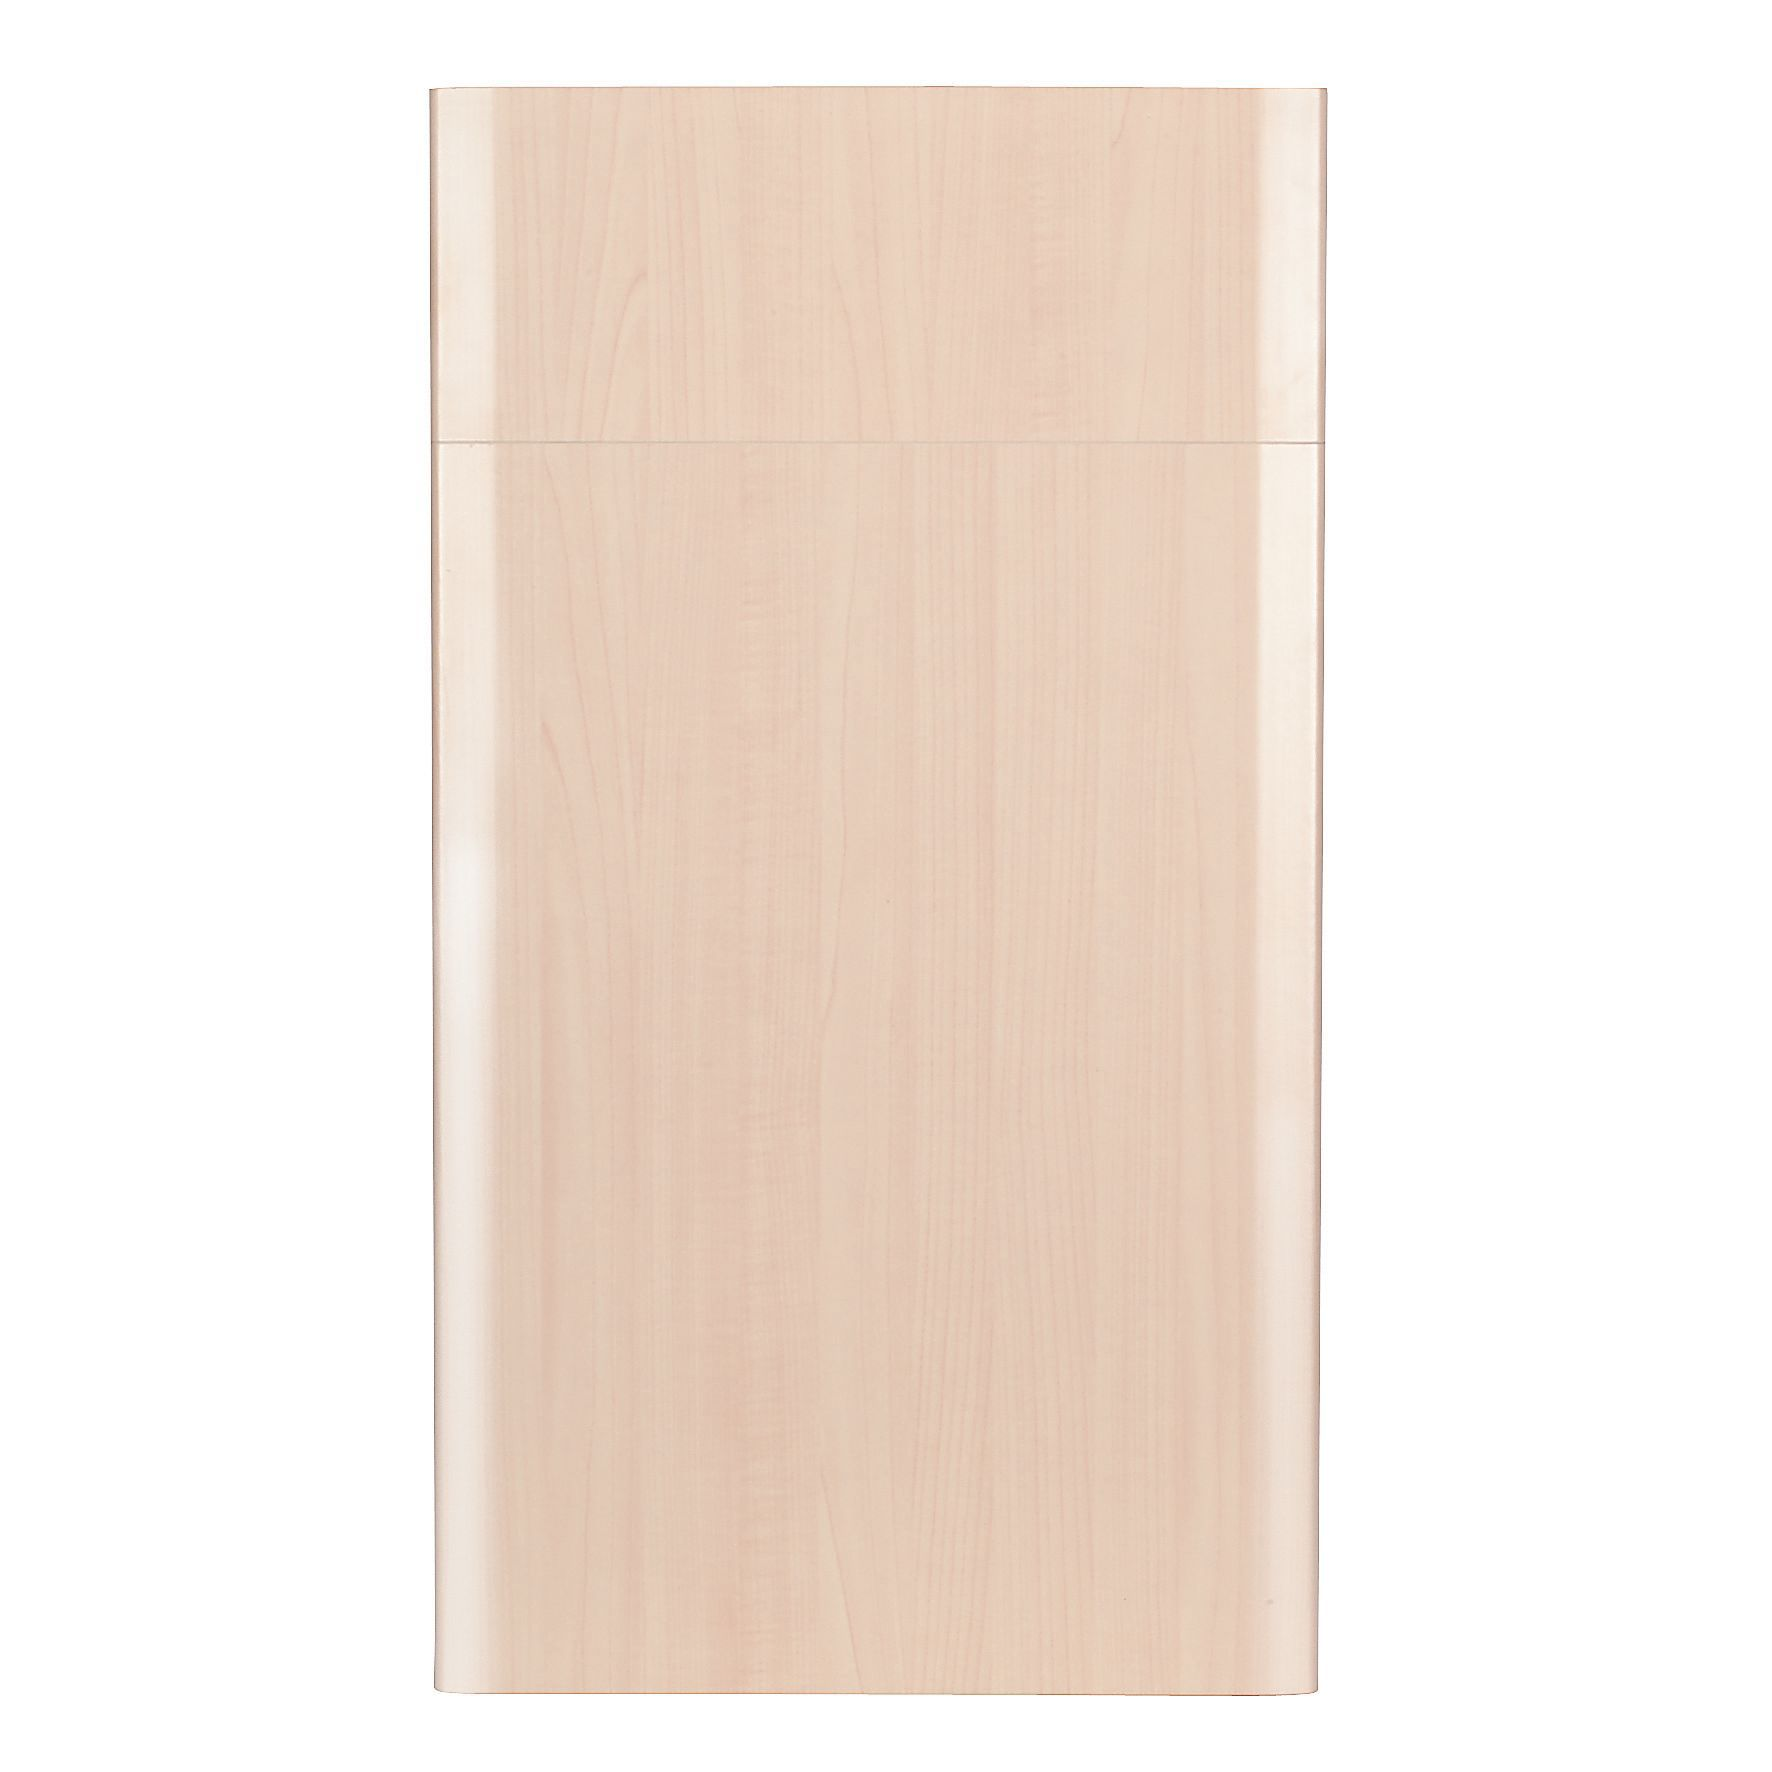 It kitchens holywell ivory style framed drawerline door drawer front w 400mm set of 1 door - Modern look kitchen cabinets pictures for maximum effect ...